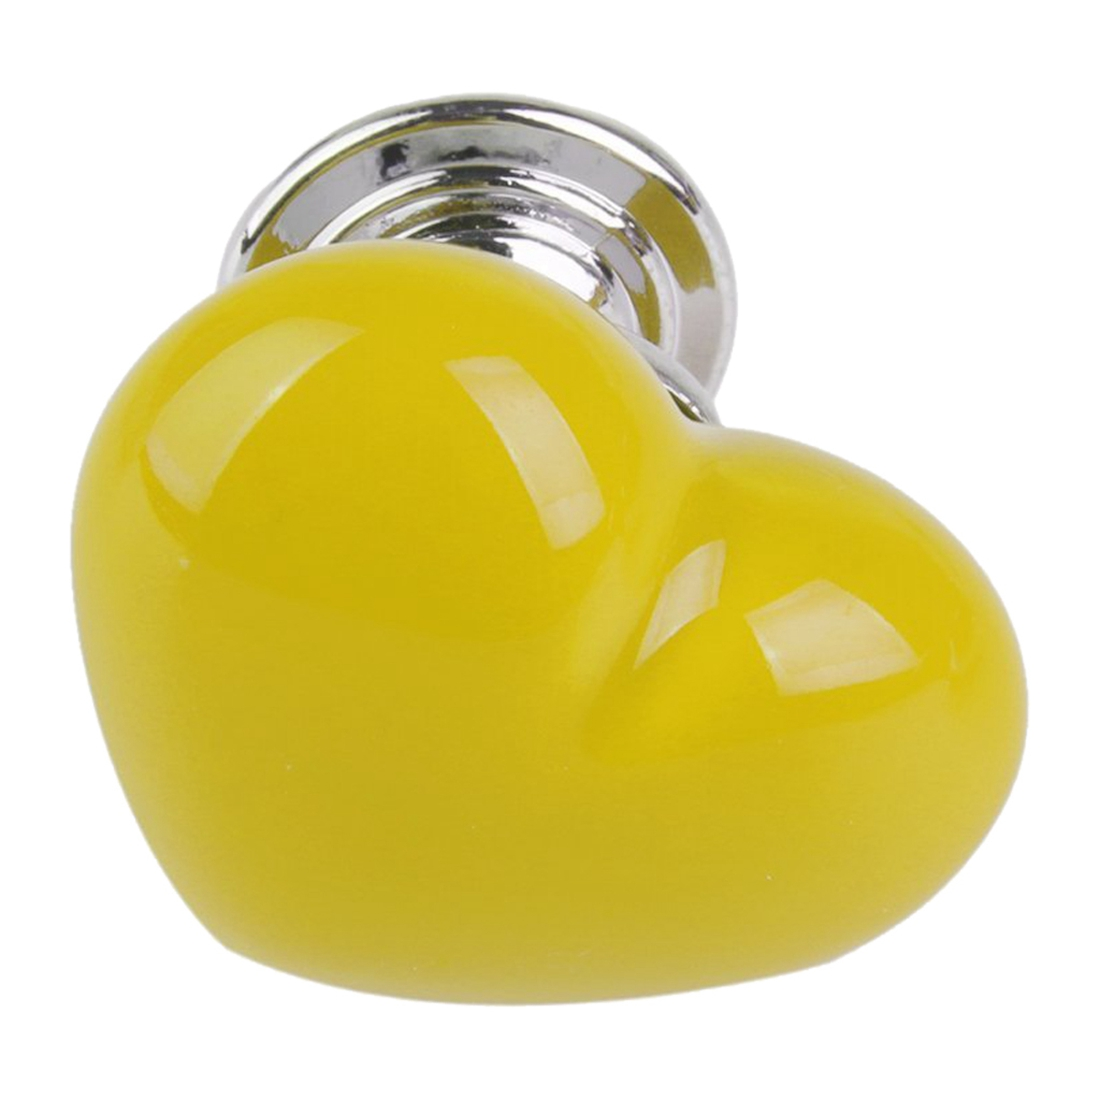 1pc Heart Shape Furniture Cabinet Cupboard Drawer Ceramic Handle Pull Knob (S, Yellow)